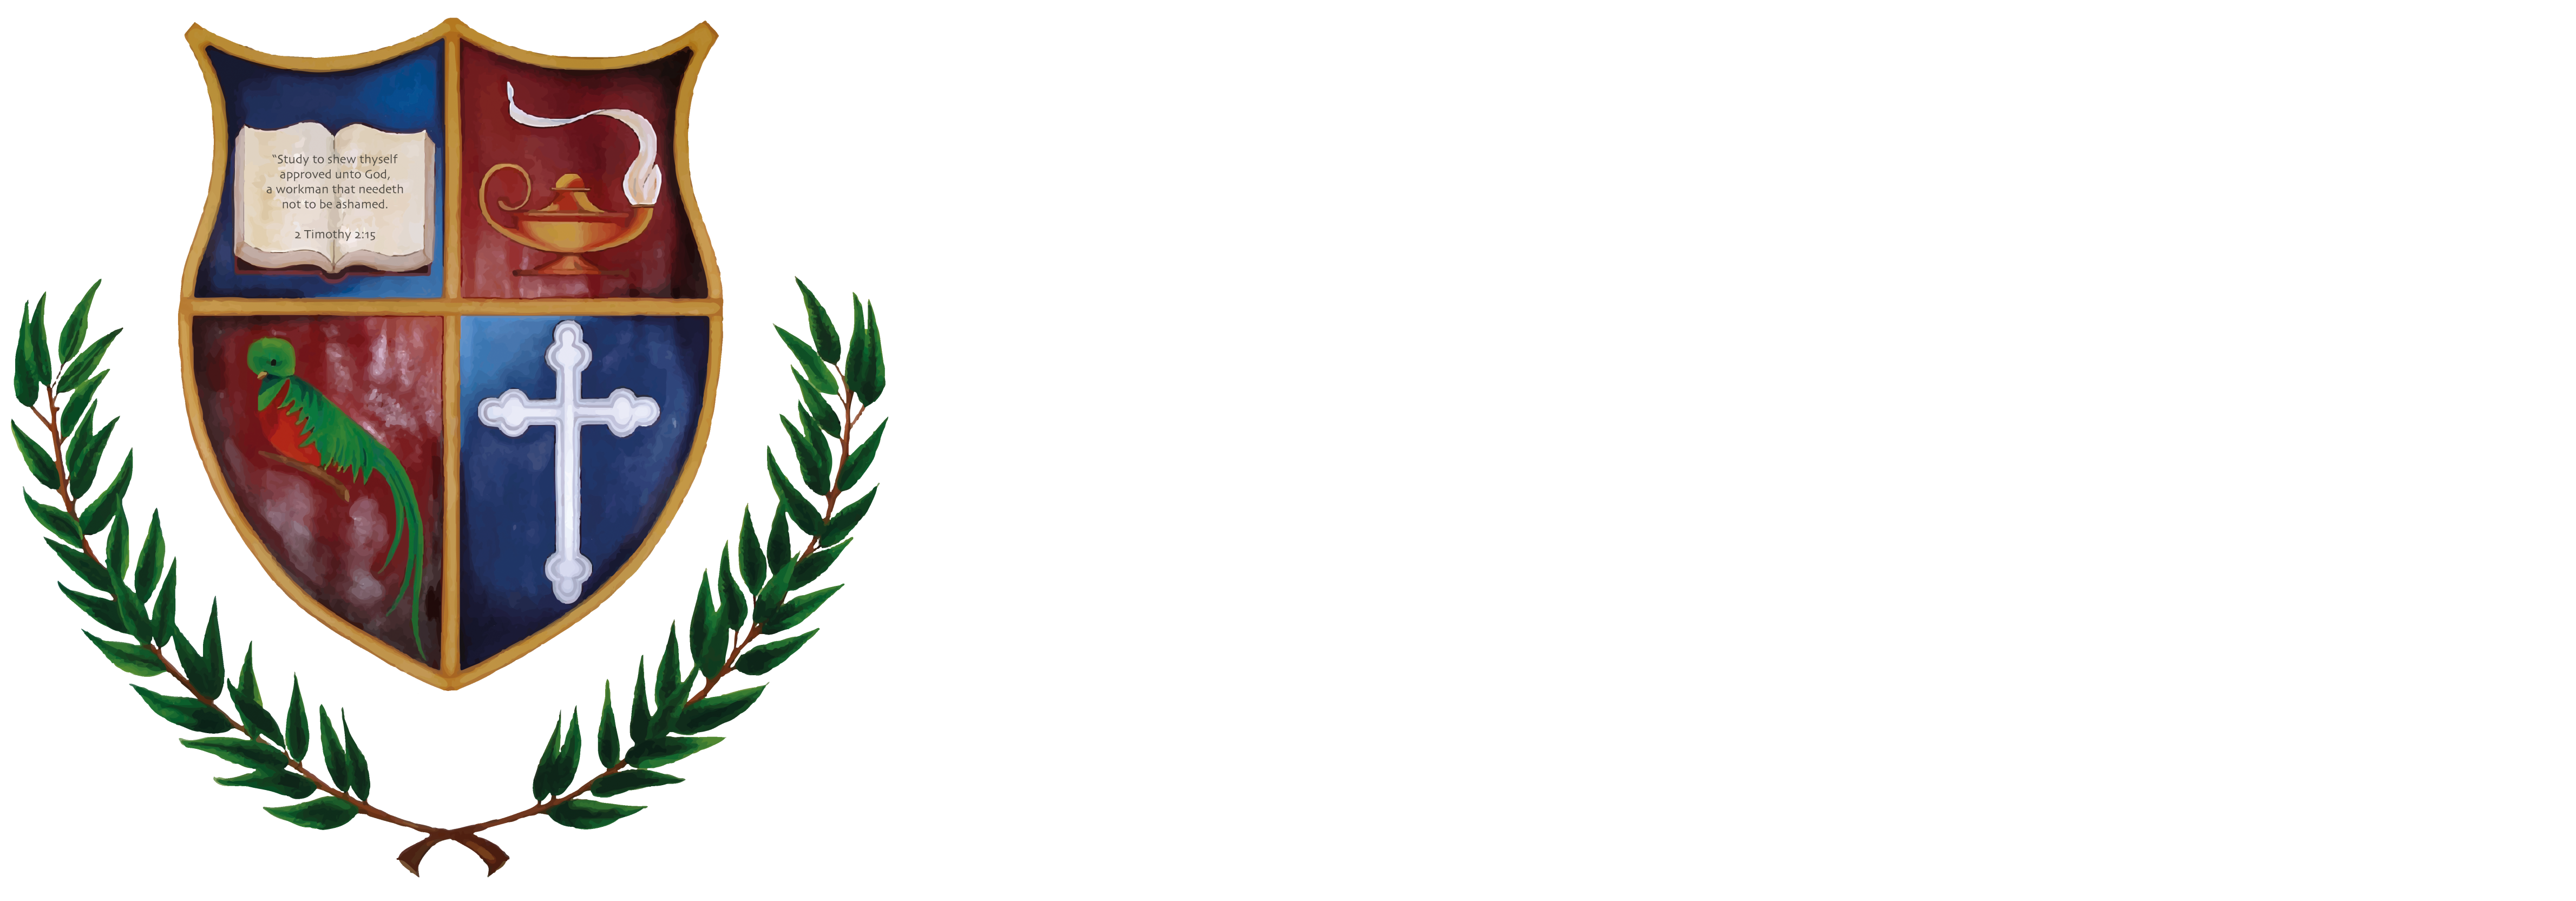 https://go.teachbeyond.org/site-content/uploads/sites/12/2020/07/CAG_logo_white.png